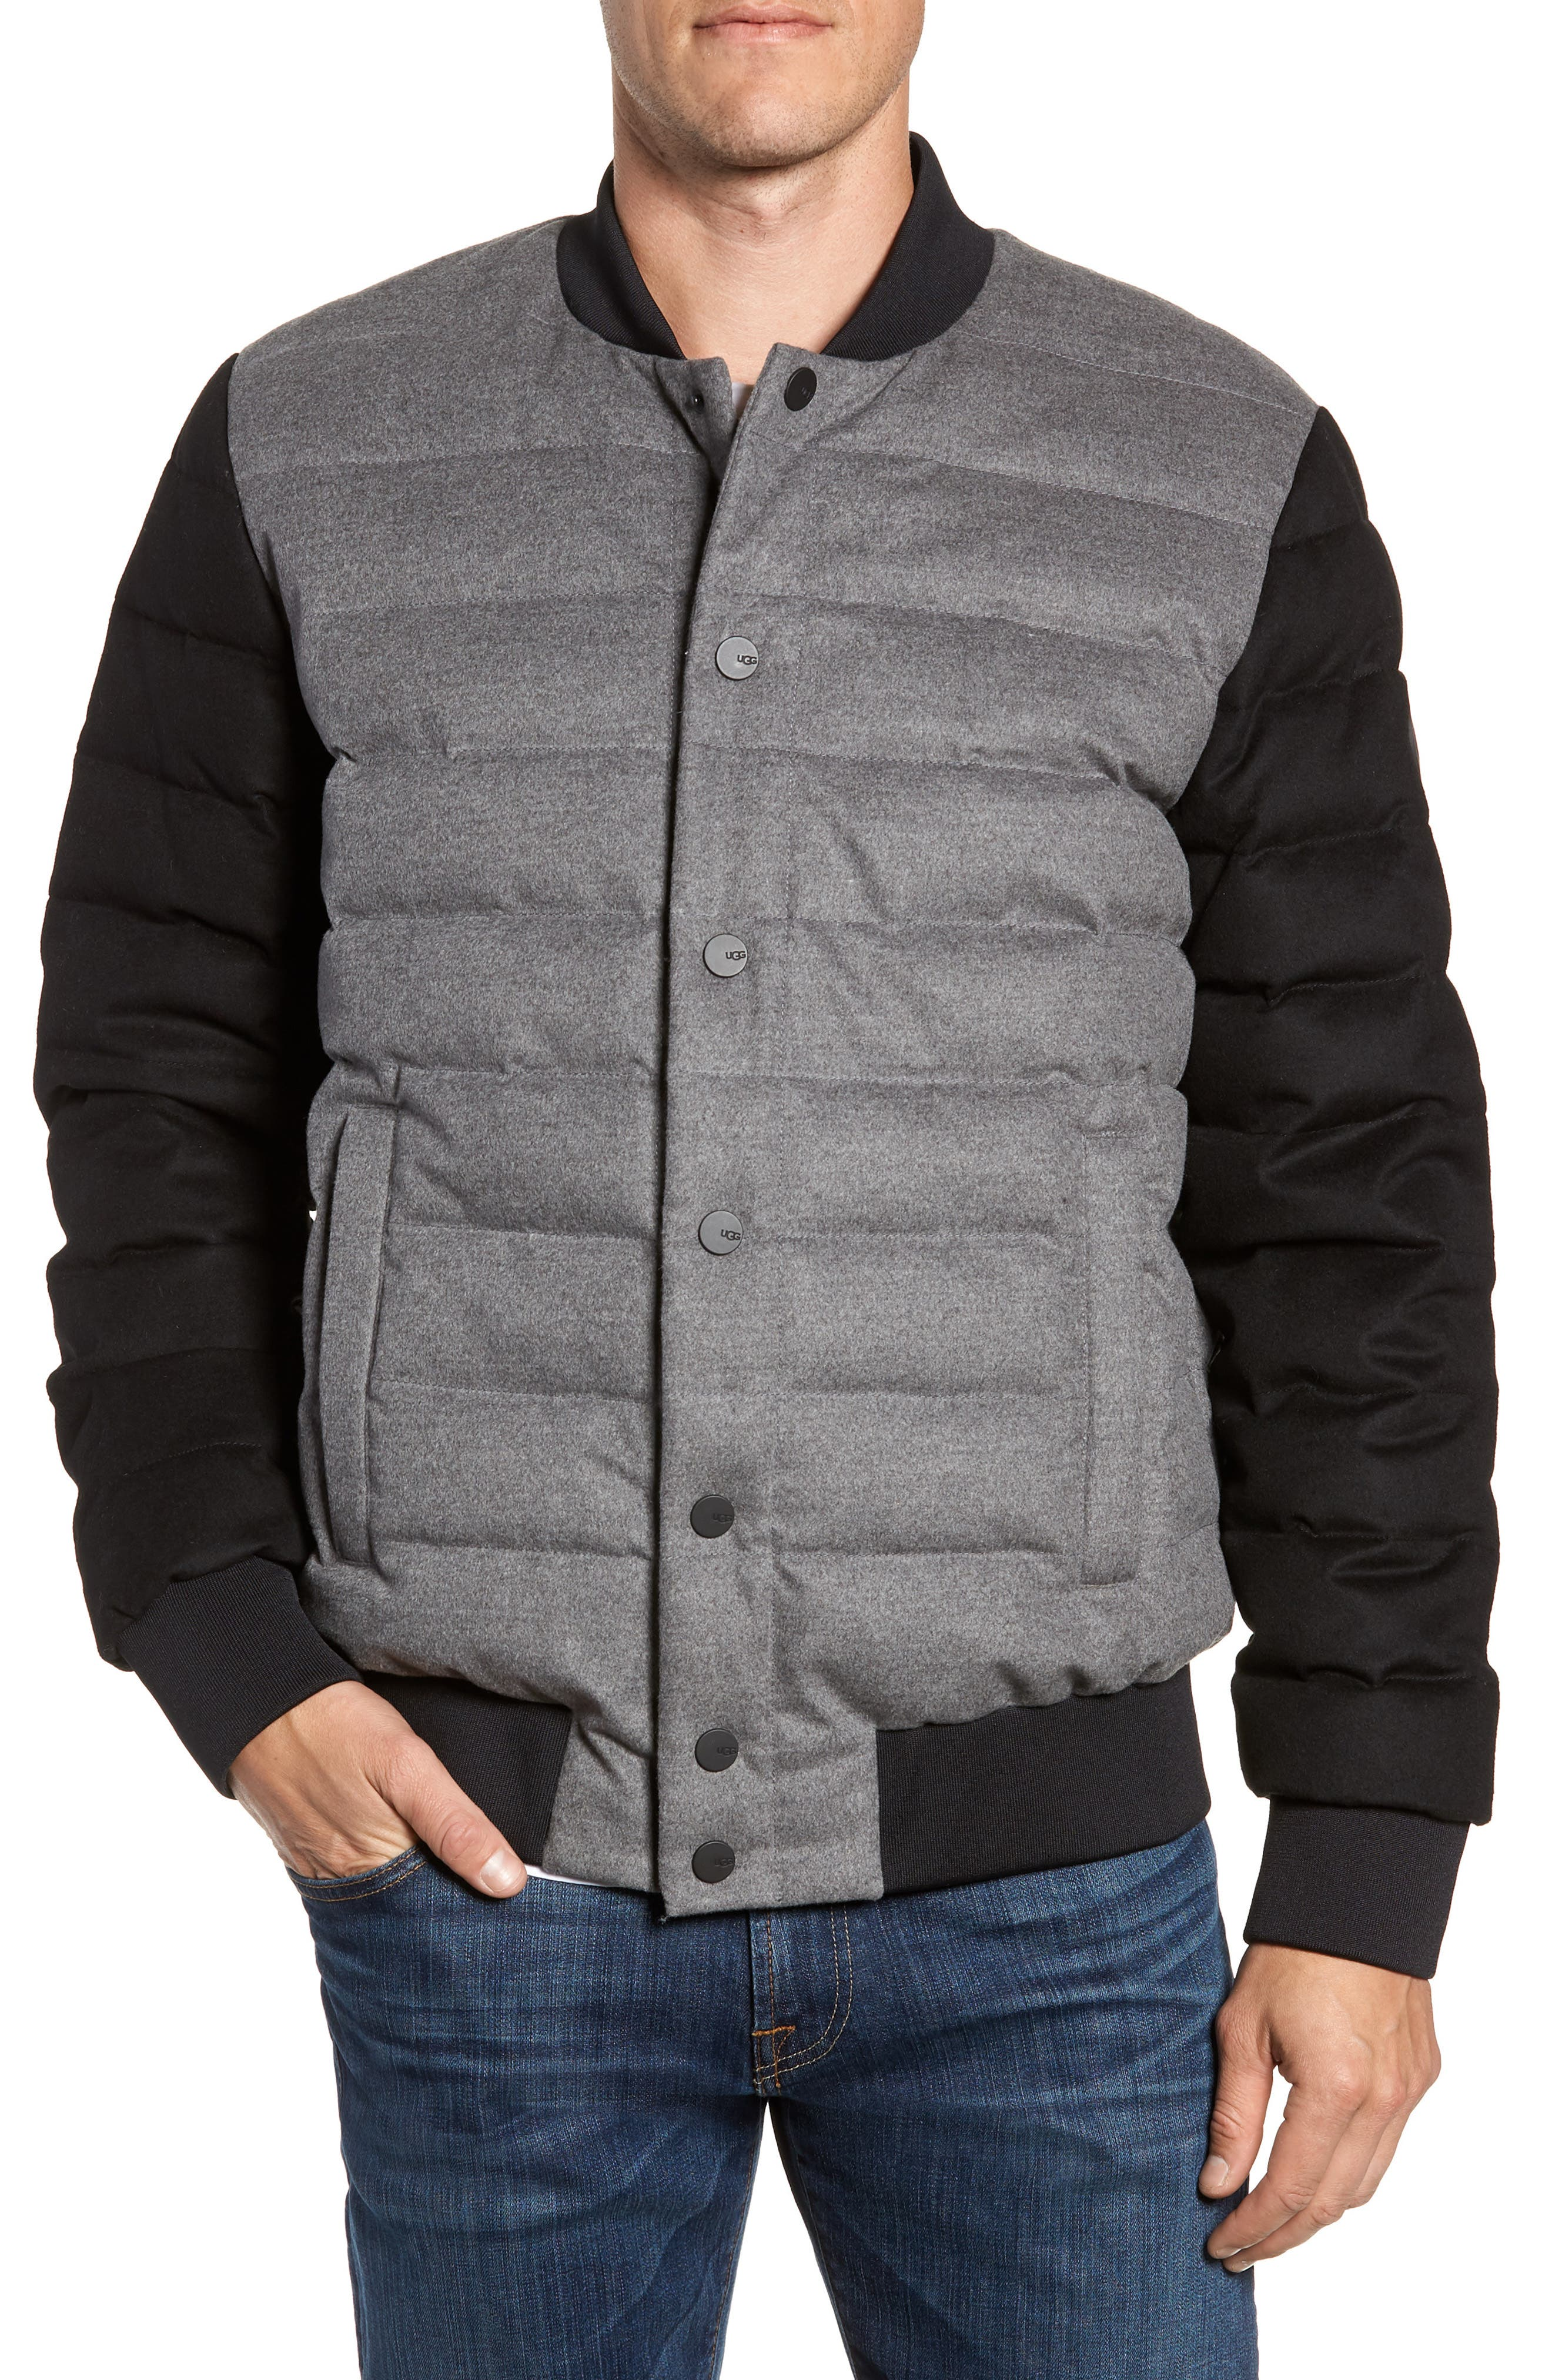 Gavin Down Bomber Jacket,                             Main thumbnail 1, color,                             MEDIUM HEATHER GREY/ BLACK